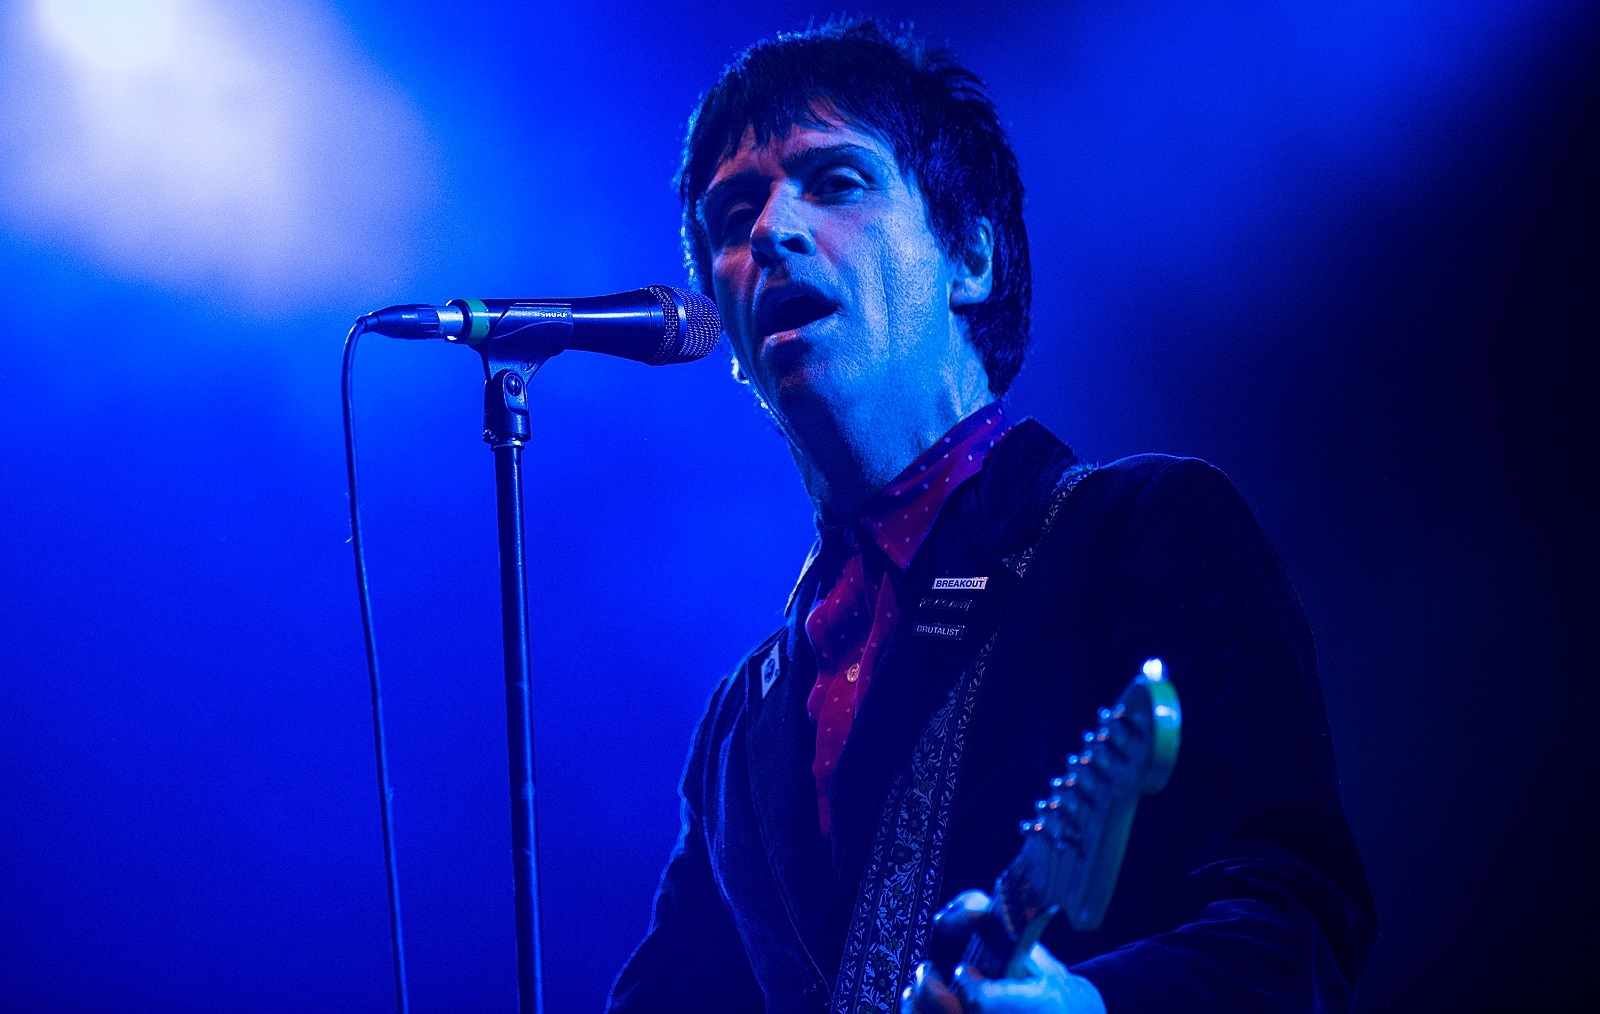 Johnny Marr's autobiography is one of Jeff Miers' suggested book gifts. (Getty Images)